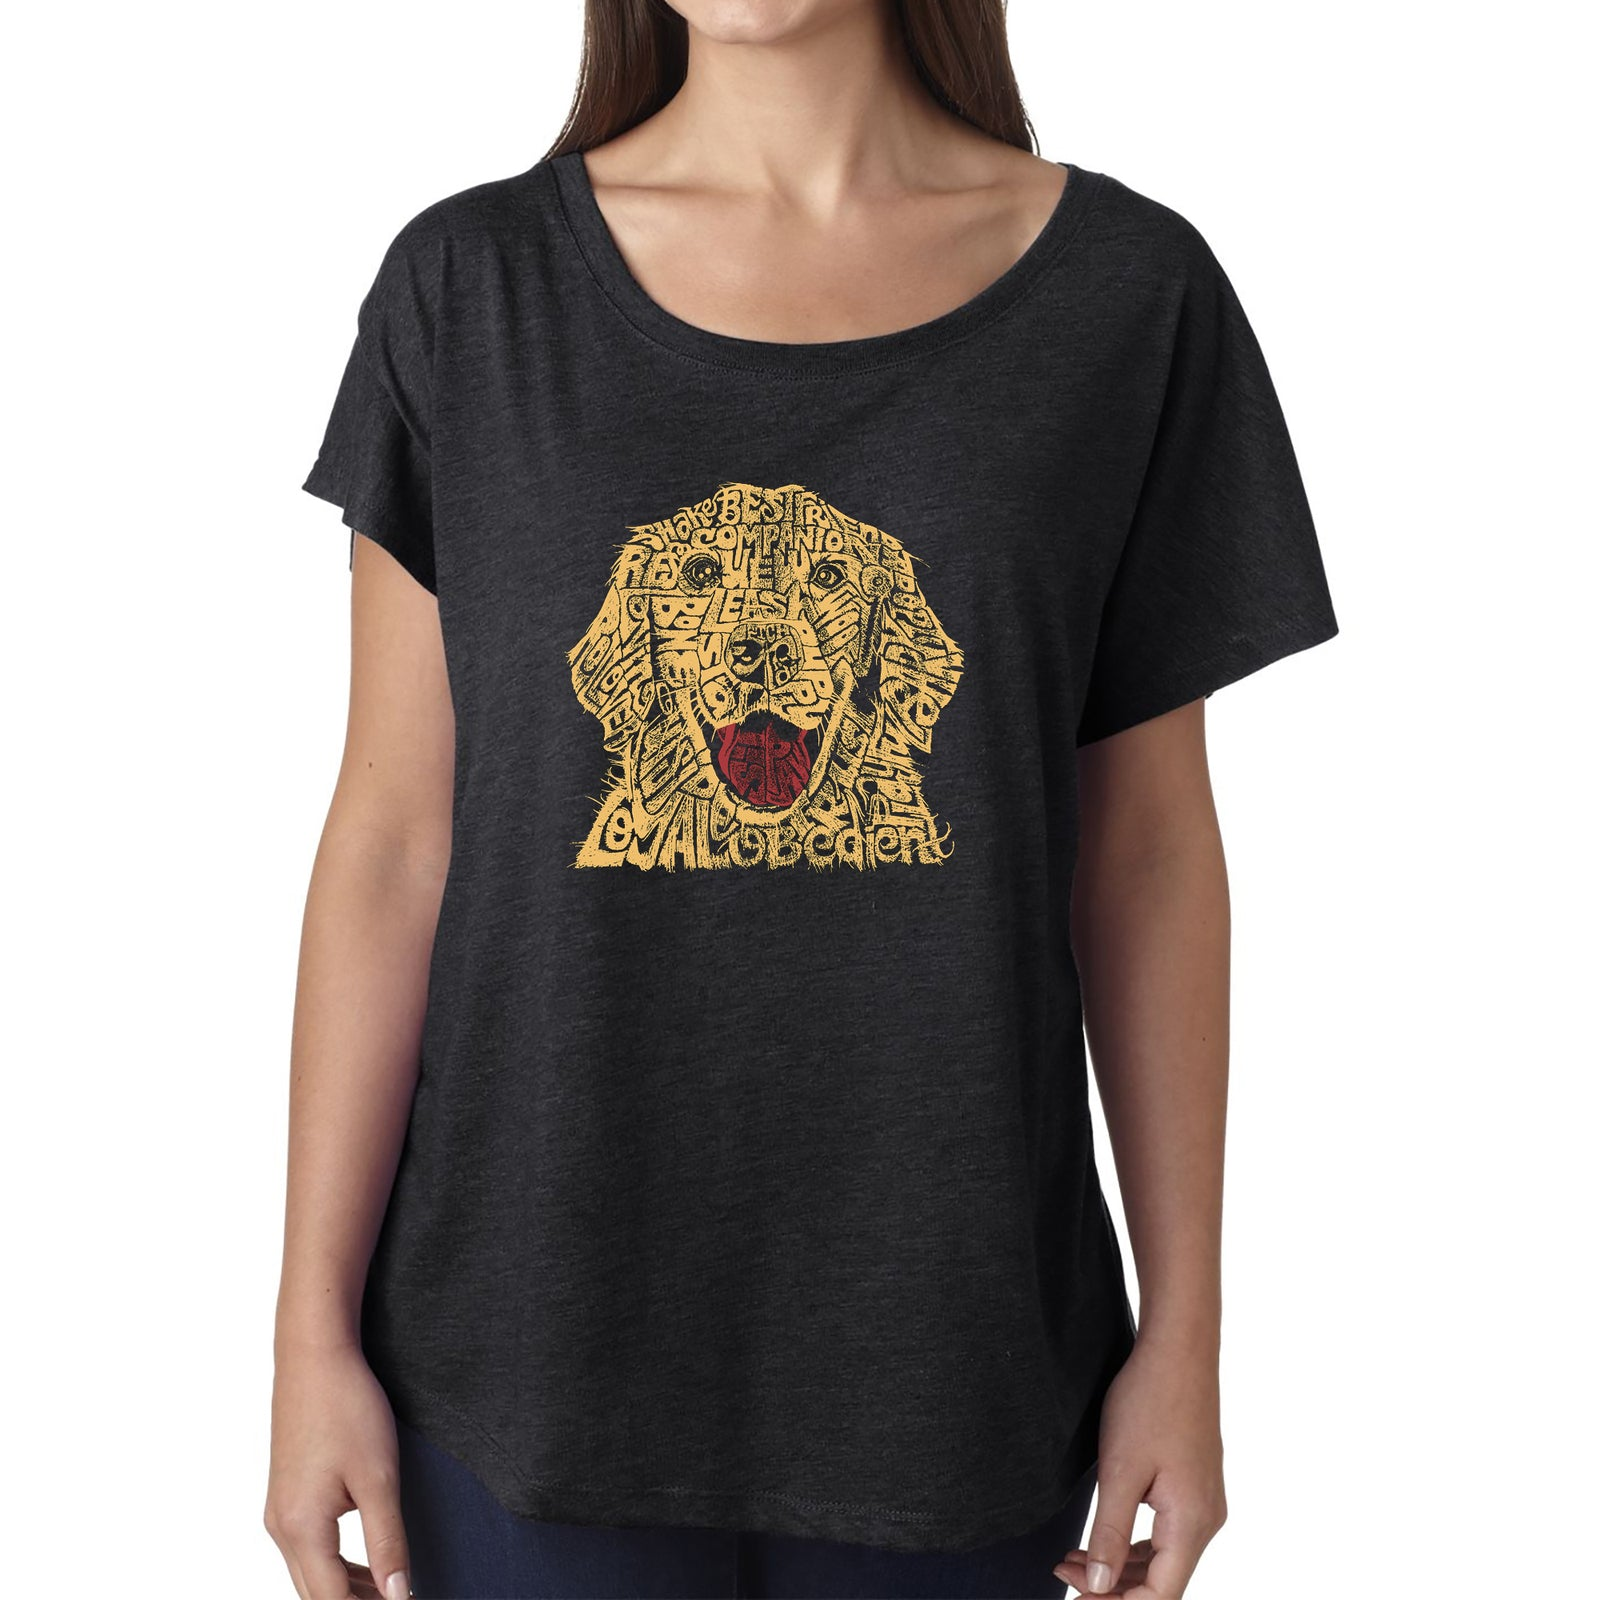 Women's Loose Fit Dolman Cut Word Art Shirt - Dog